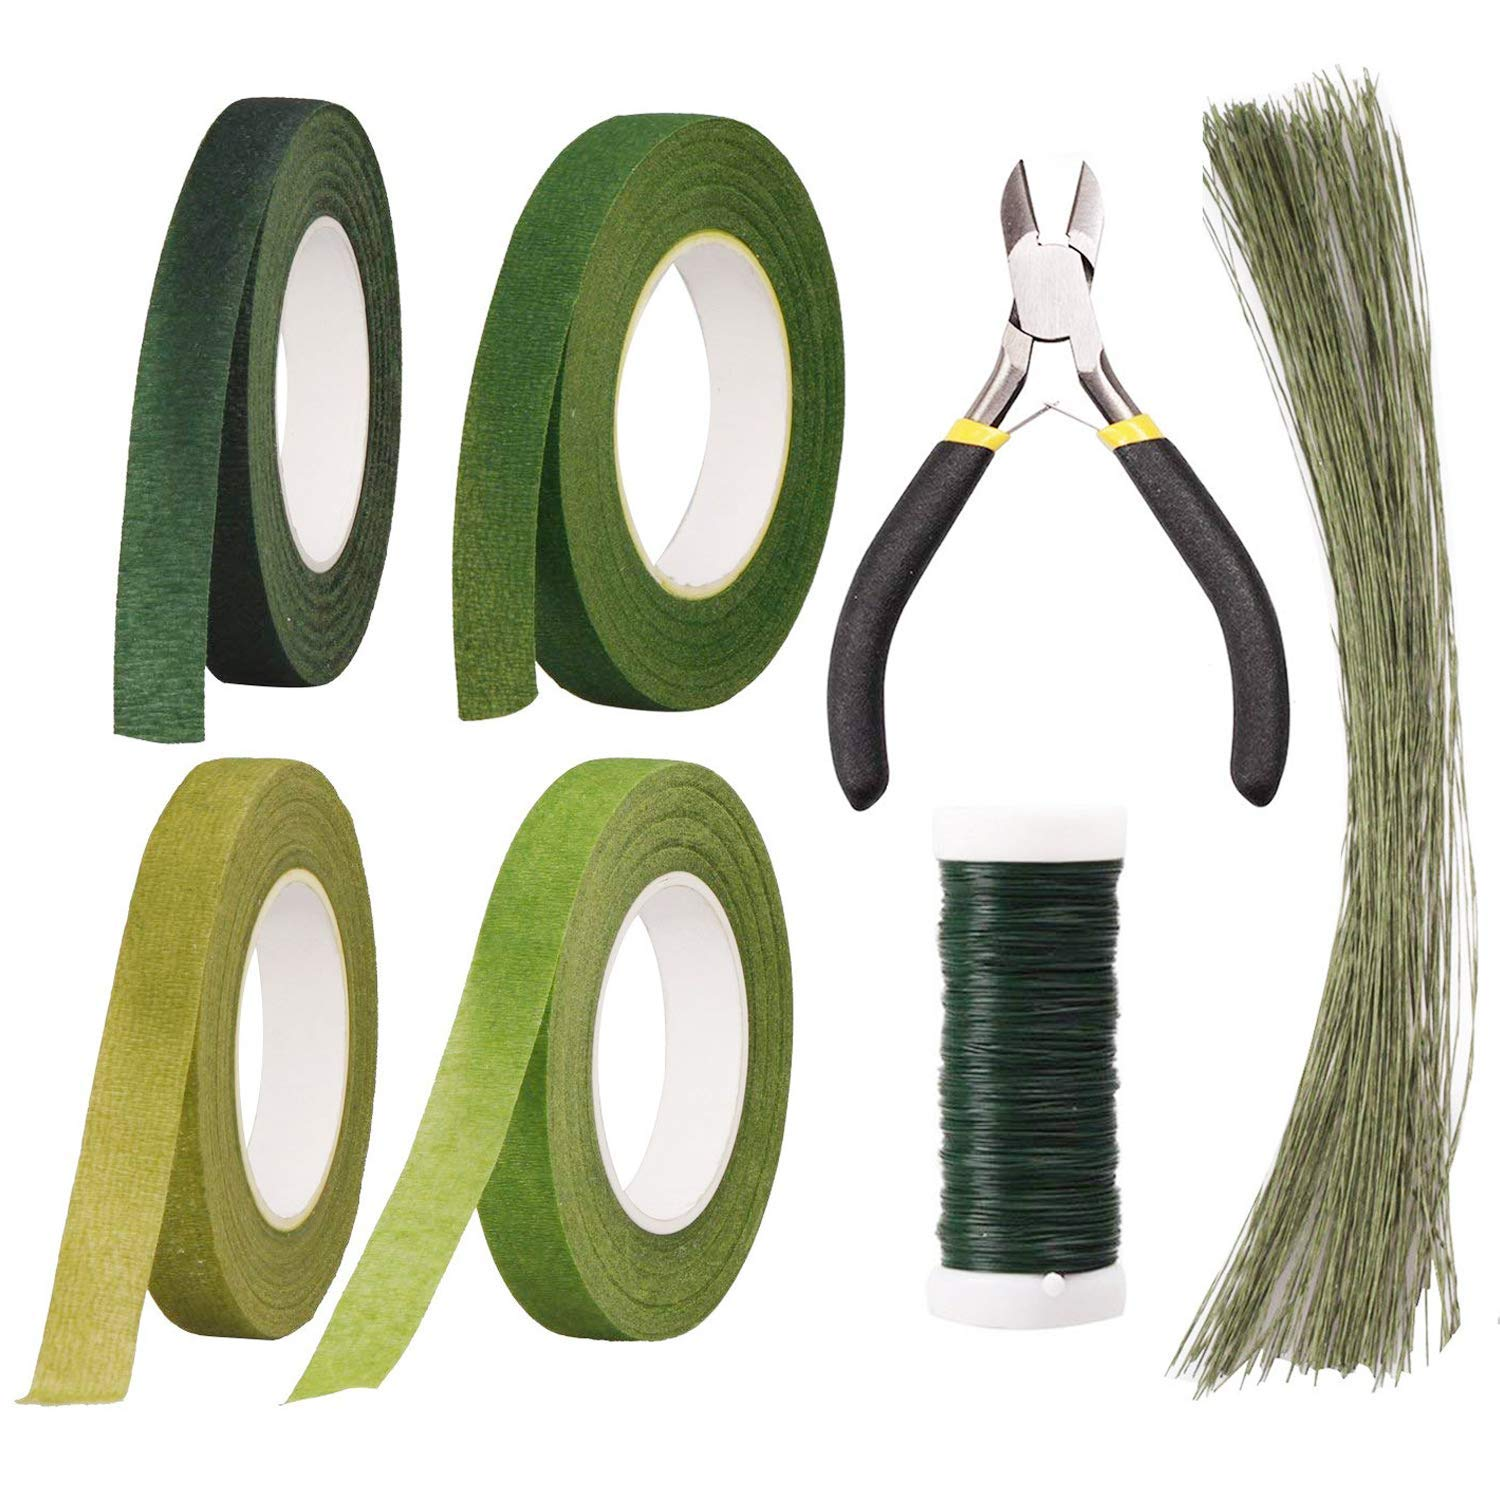 Floral Arrangement Kit Floral Tools Wire Cutter,4 Rolls Green Floral Tape,1 Pcs Floral Tools Wire Cutter,150Pcs 30Gauge Floral Stem Wire,0.4MM Floral Stem Wire